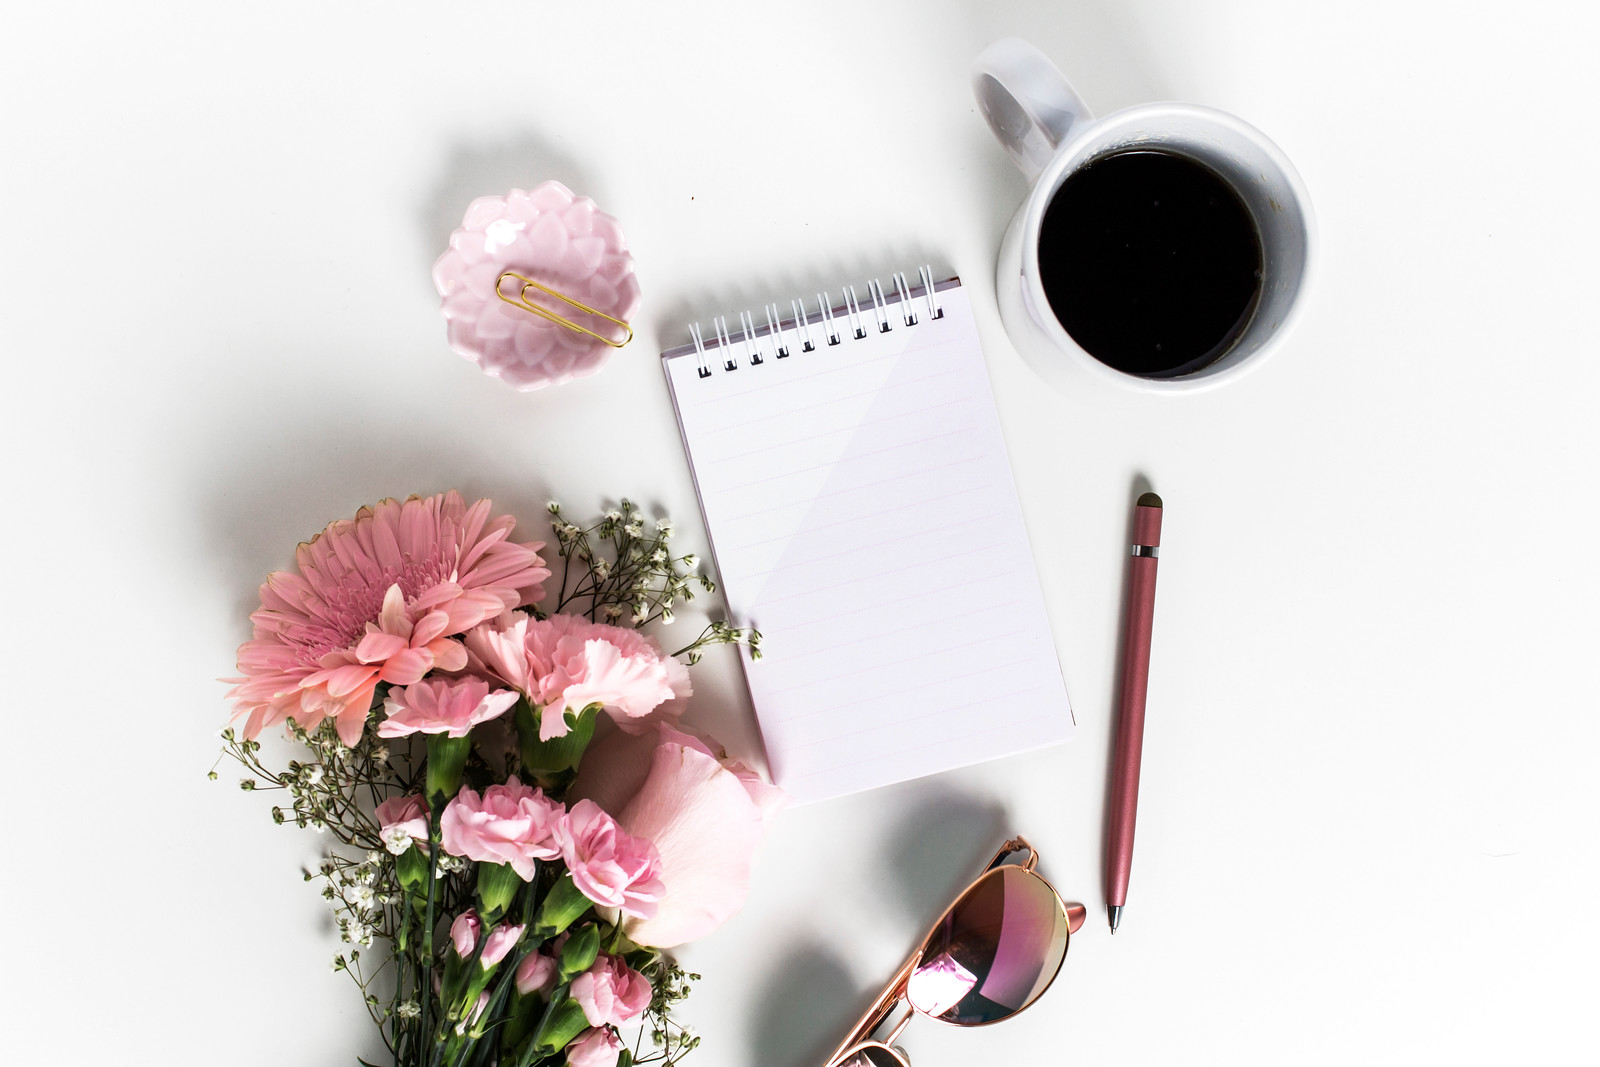 pink flowers, notepad, pen, sunglasses, cup of coffee